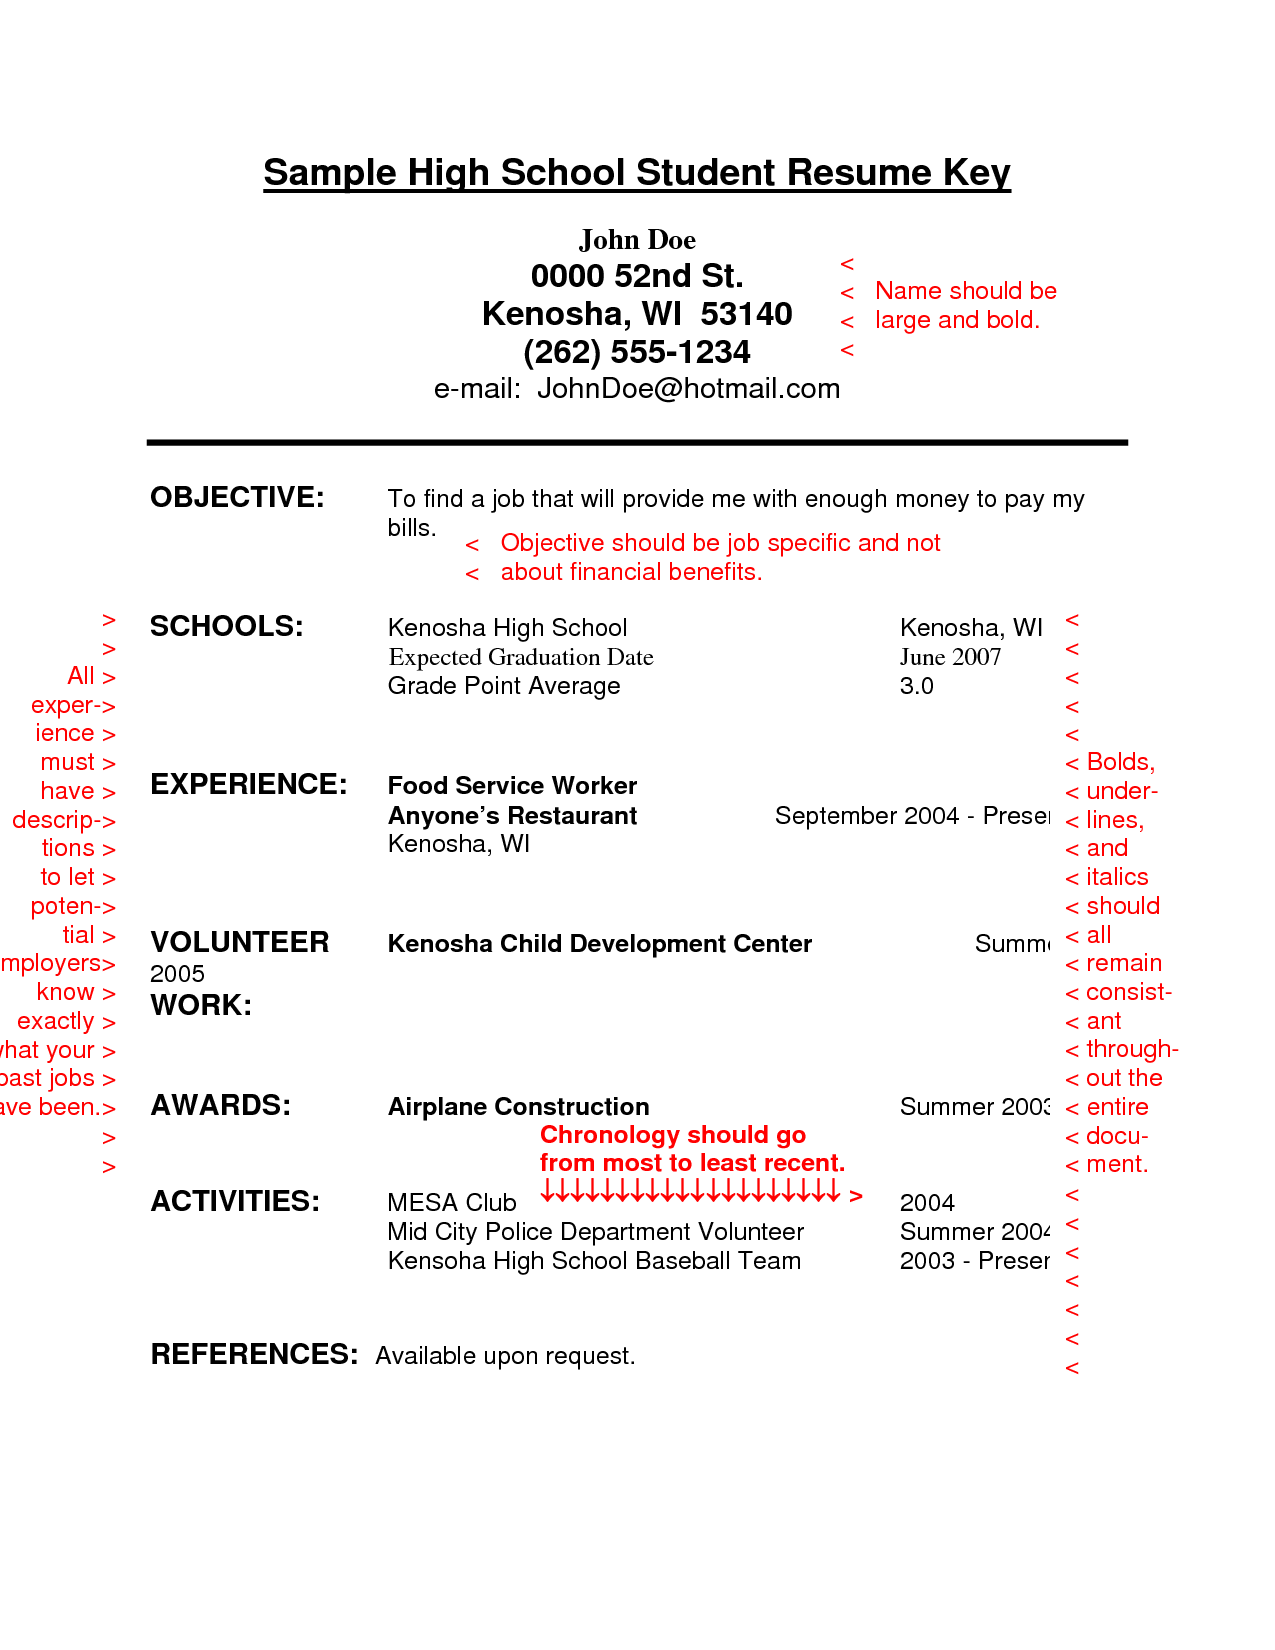 Pin by jobresume on Resume Career termplate free | Pinterest | High ...